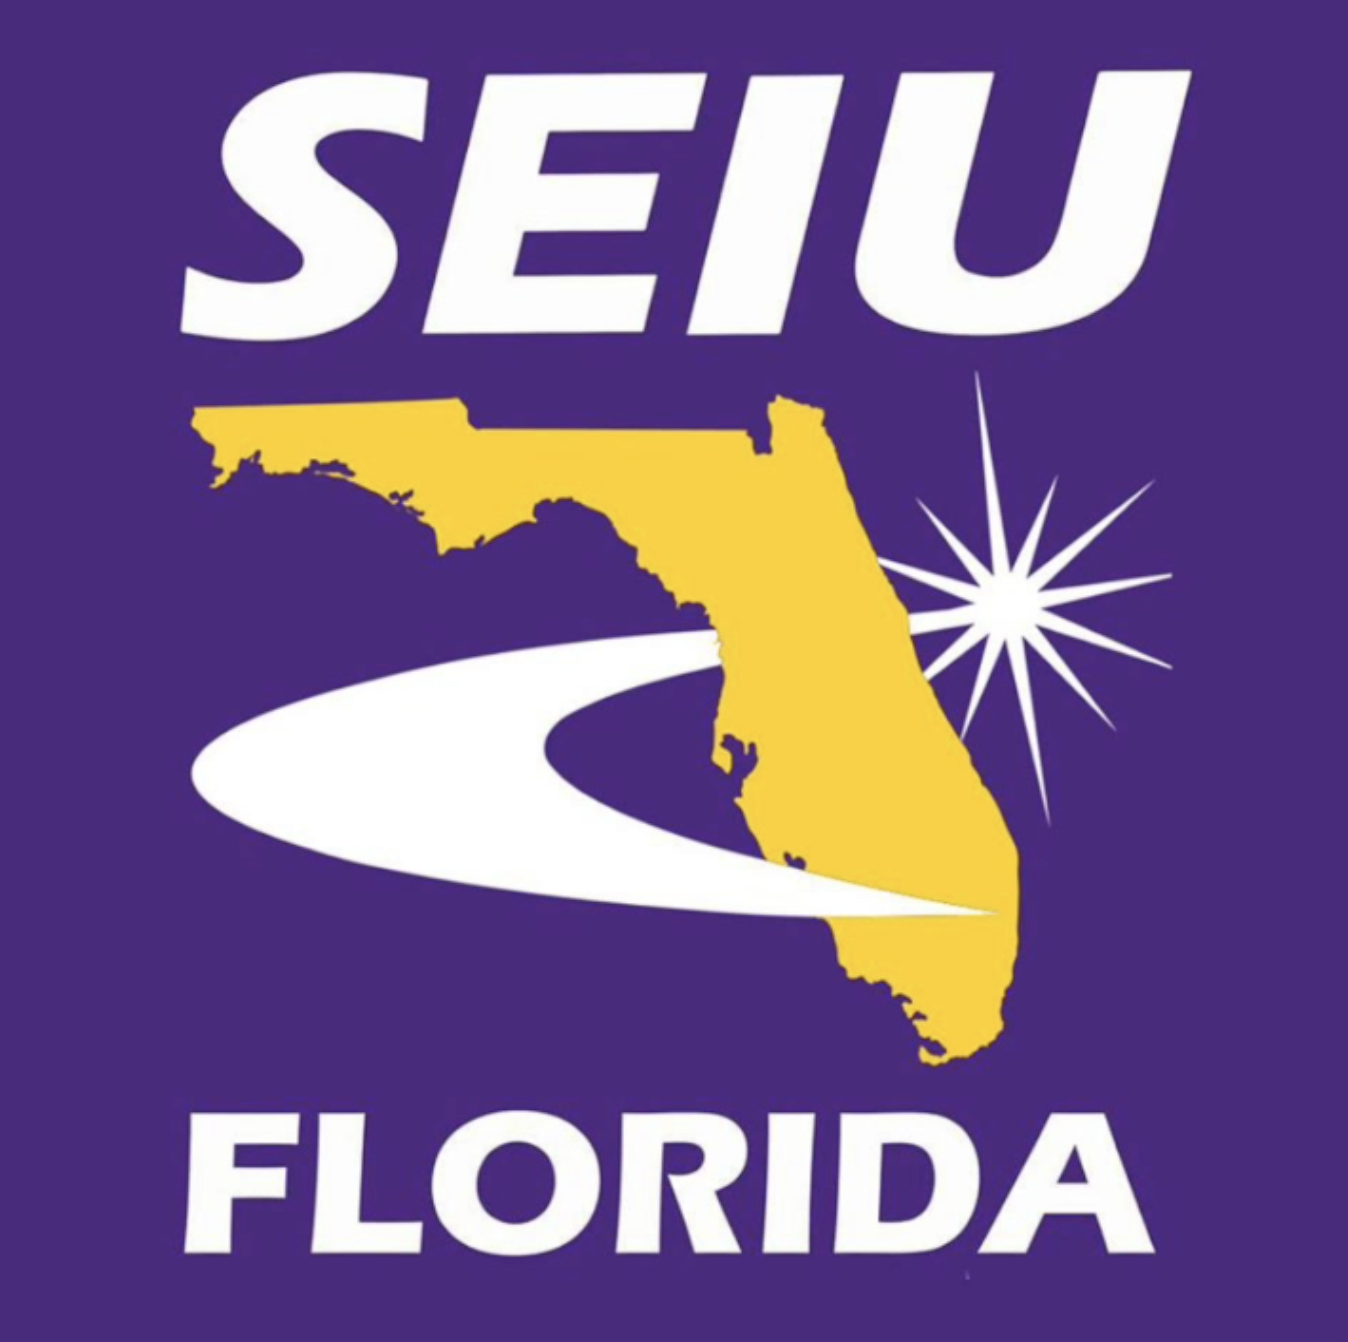 SEIU FLORIDA Represents Nurses, Doctors and Airport workers, endorses Samuel Vilchez Santiago